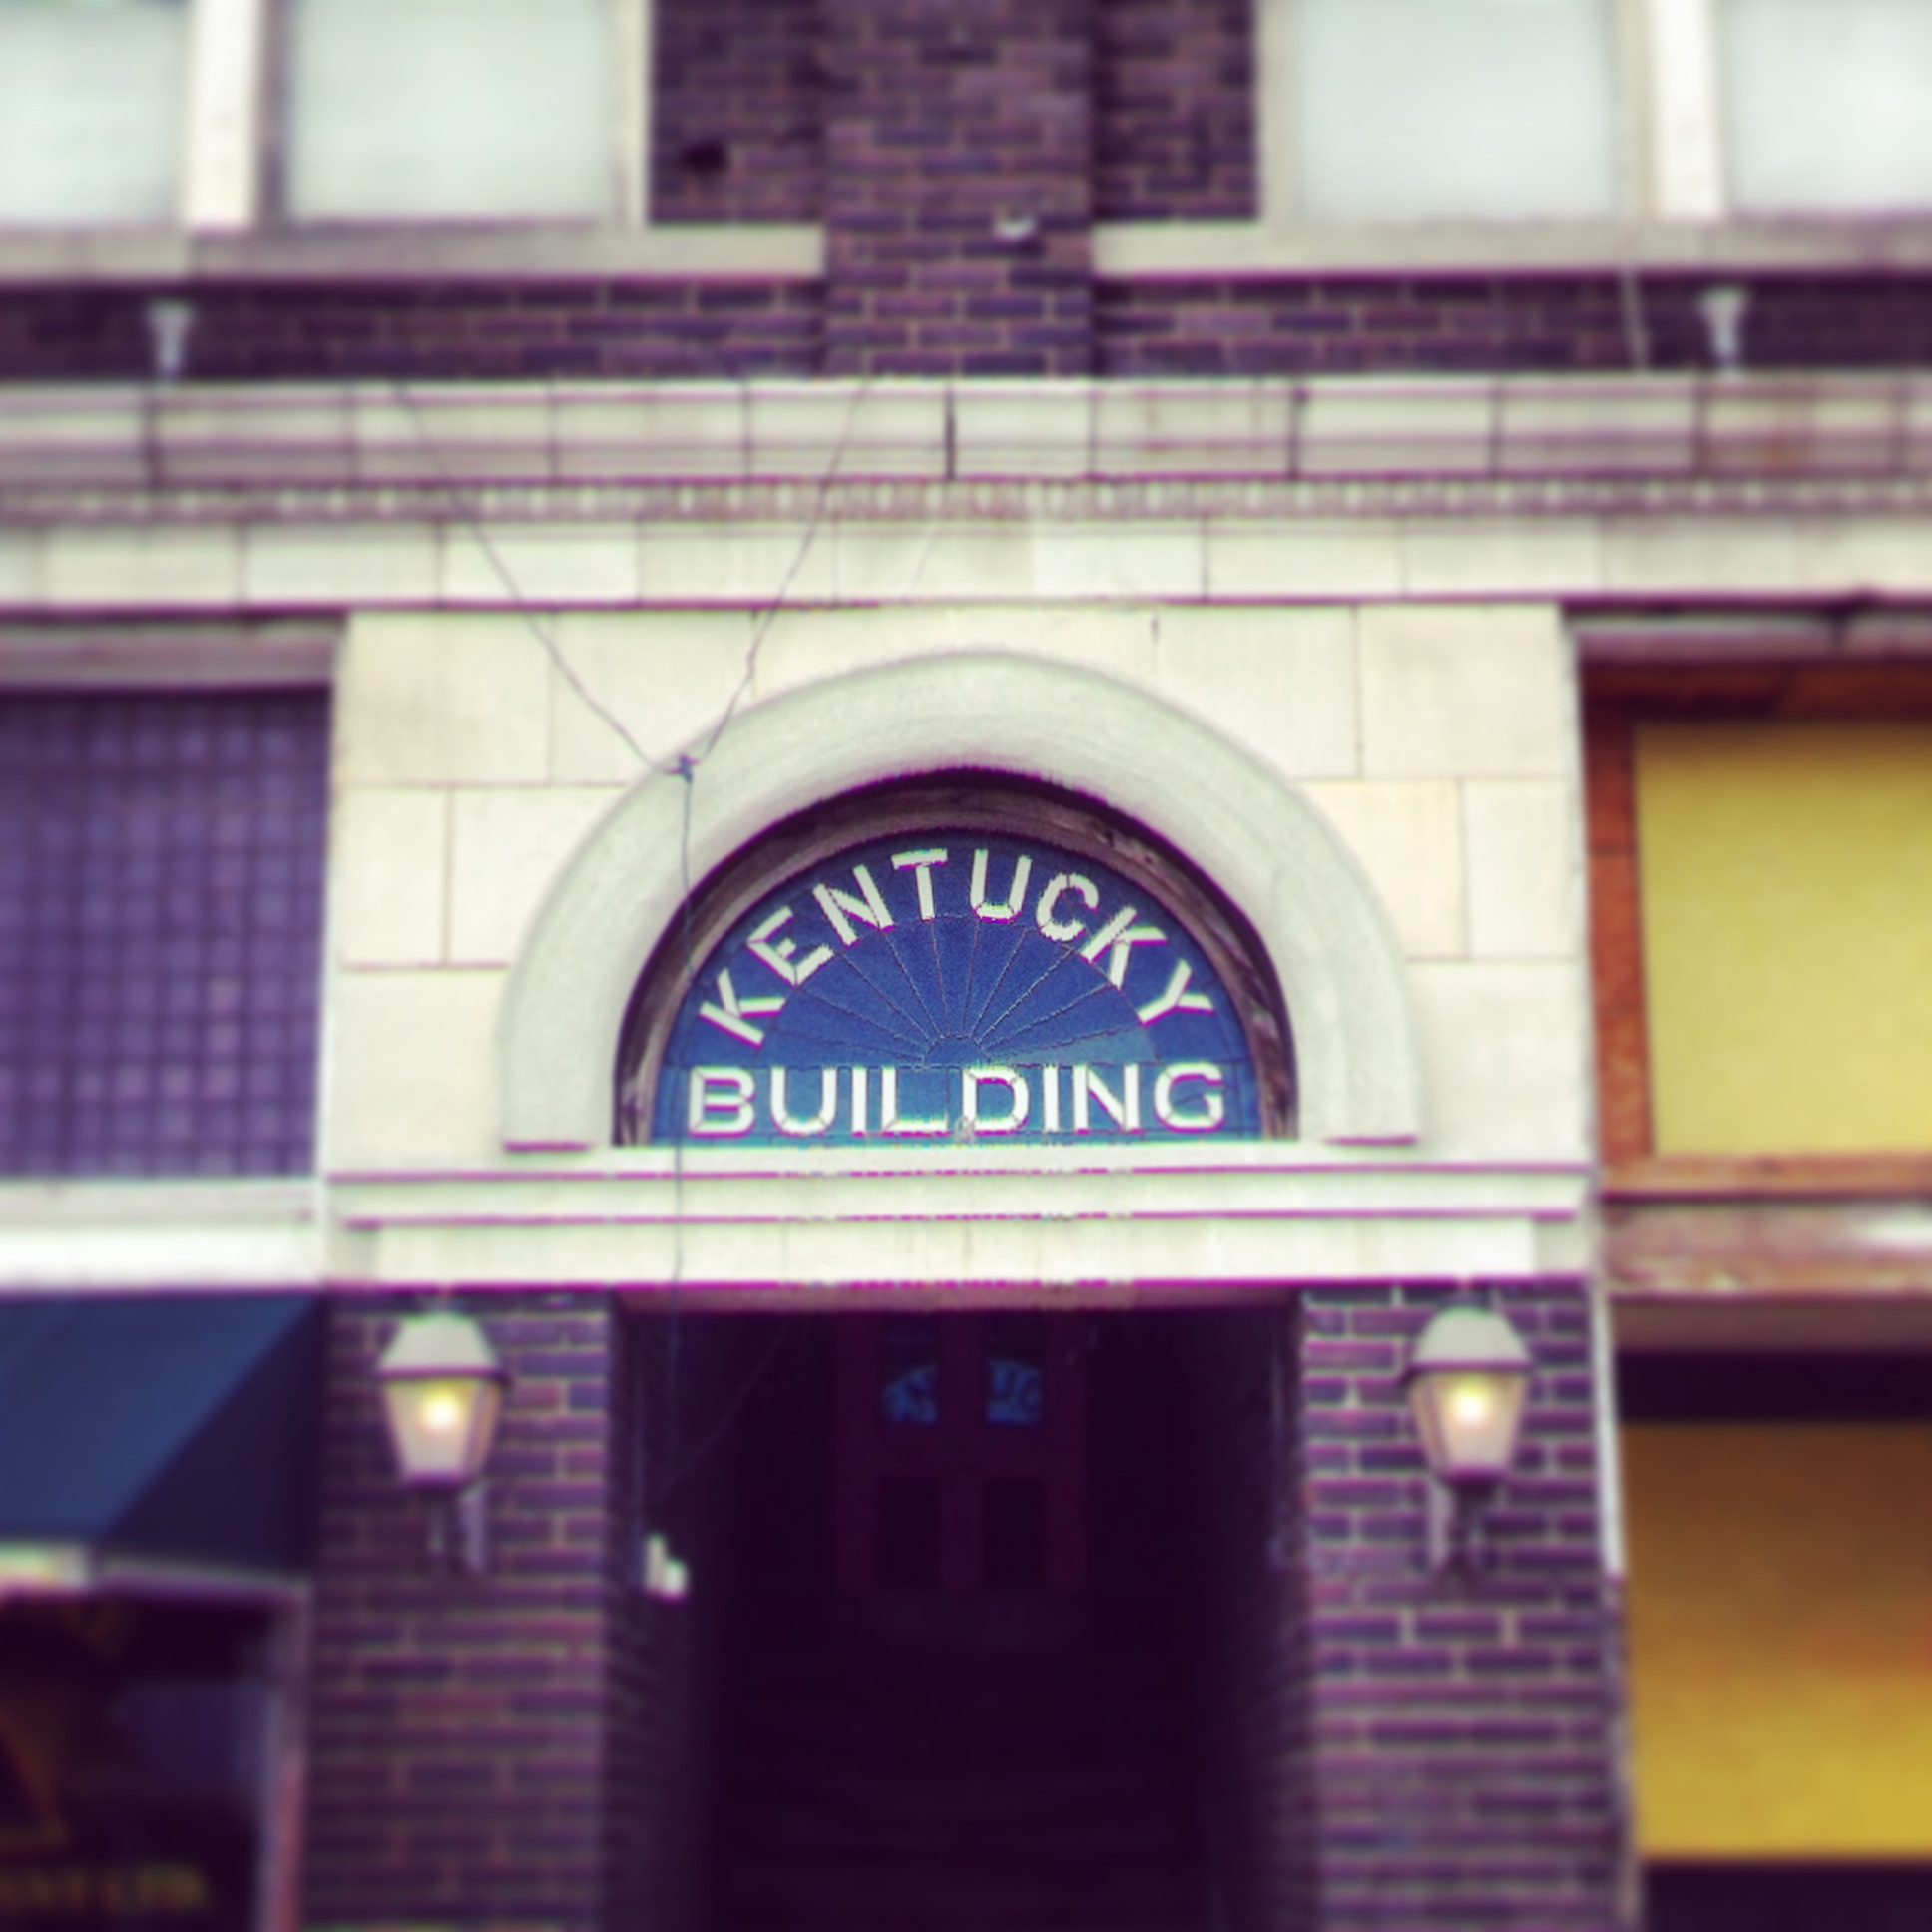 Kentucky Building